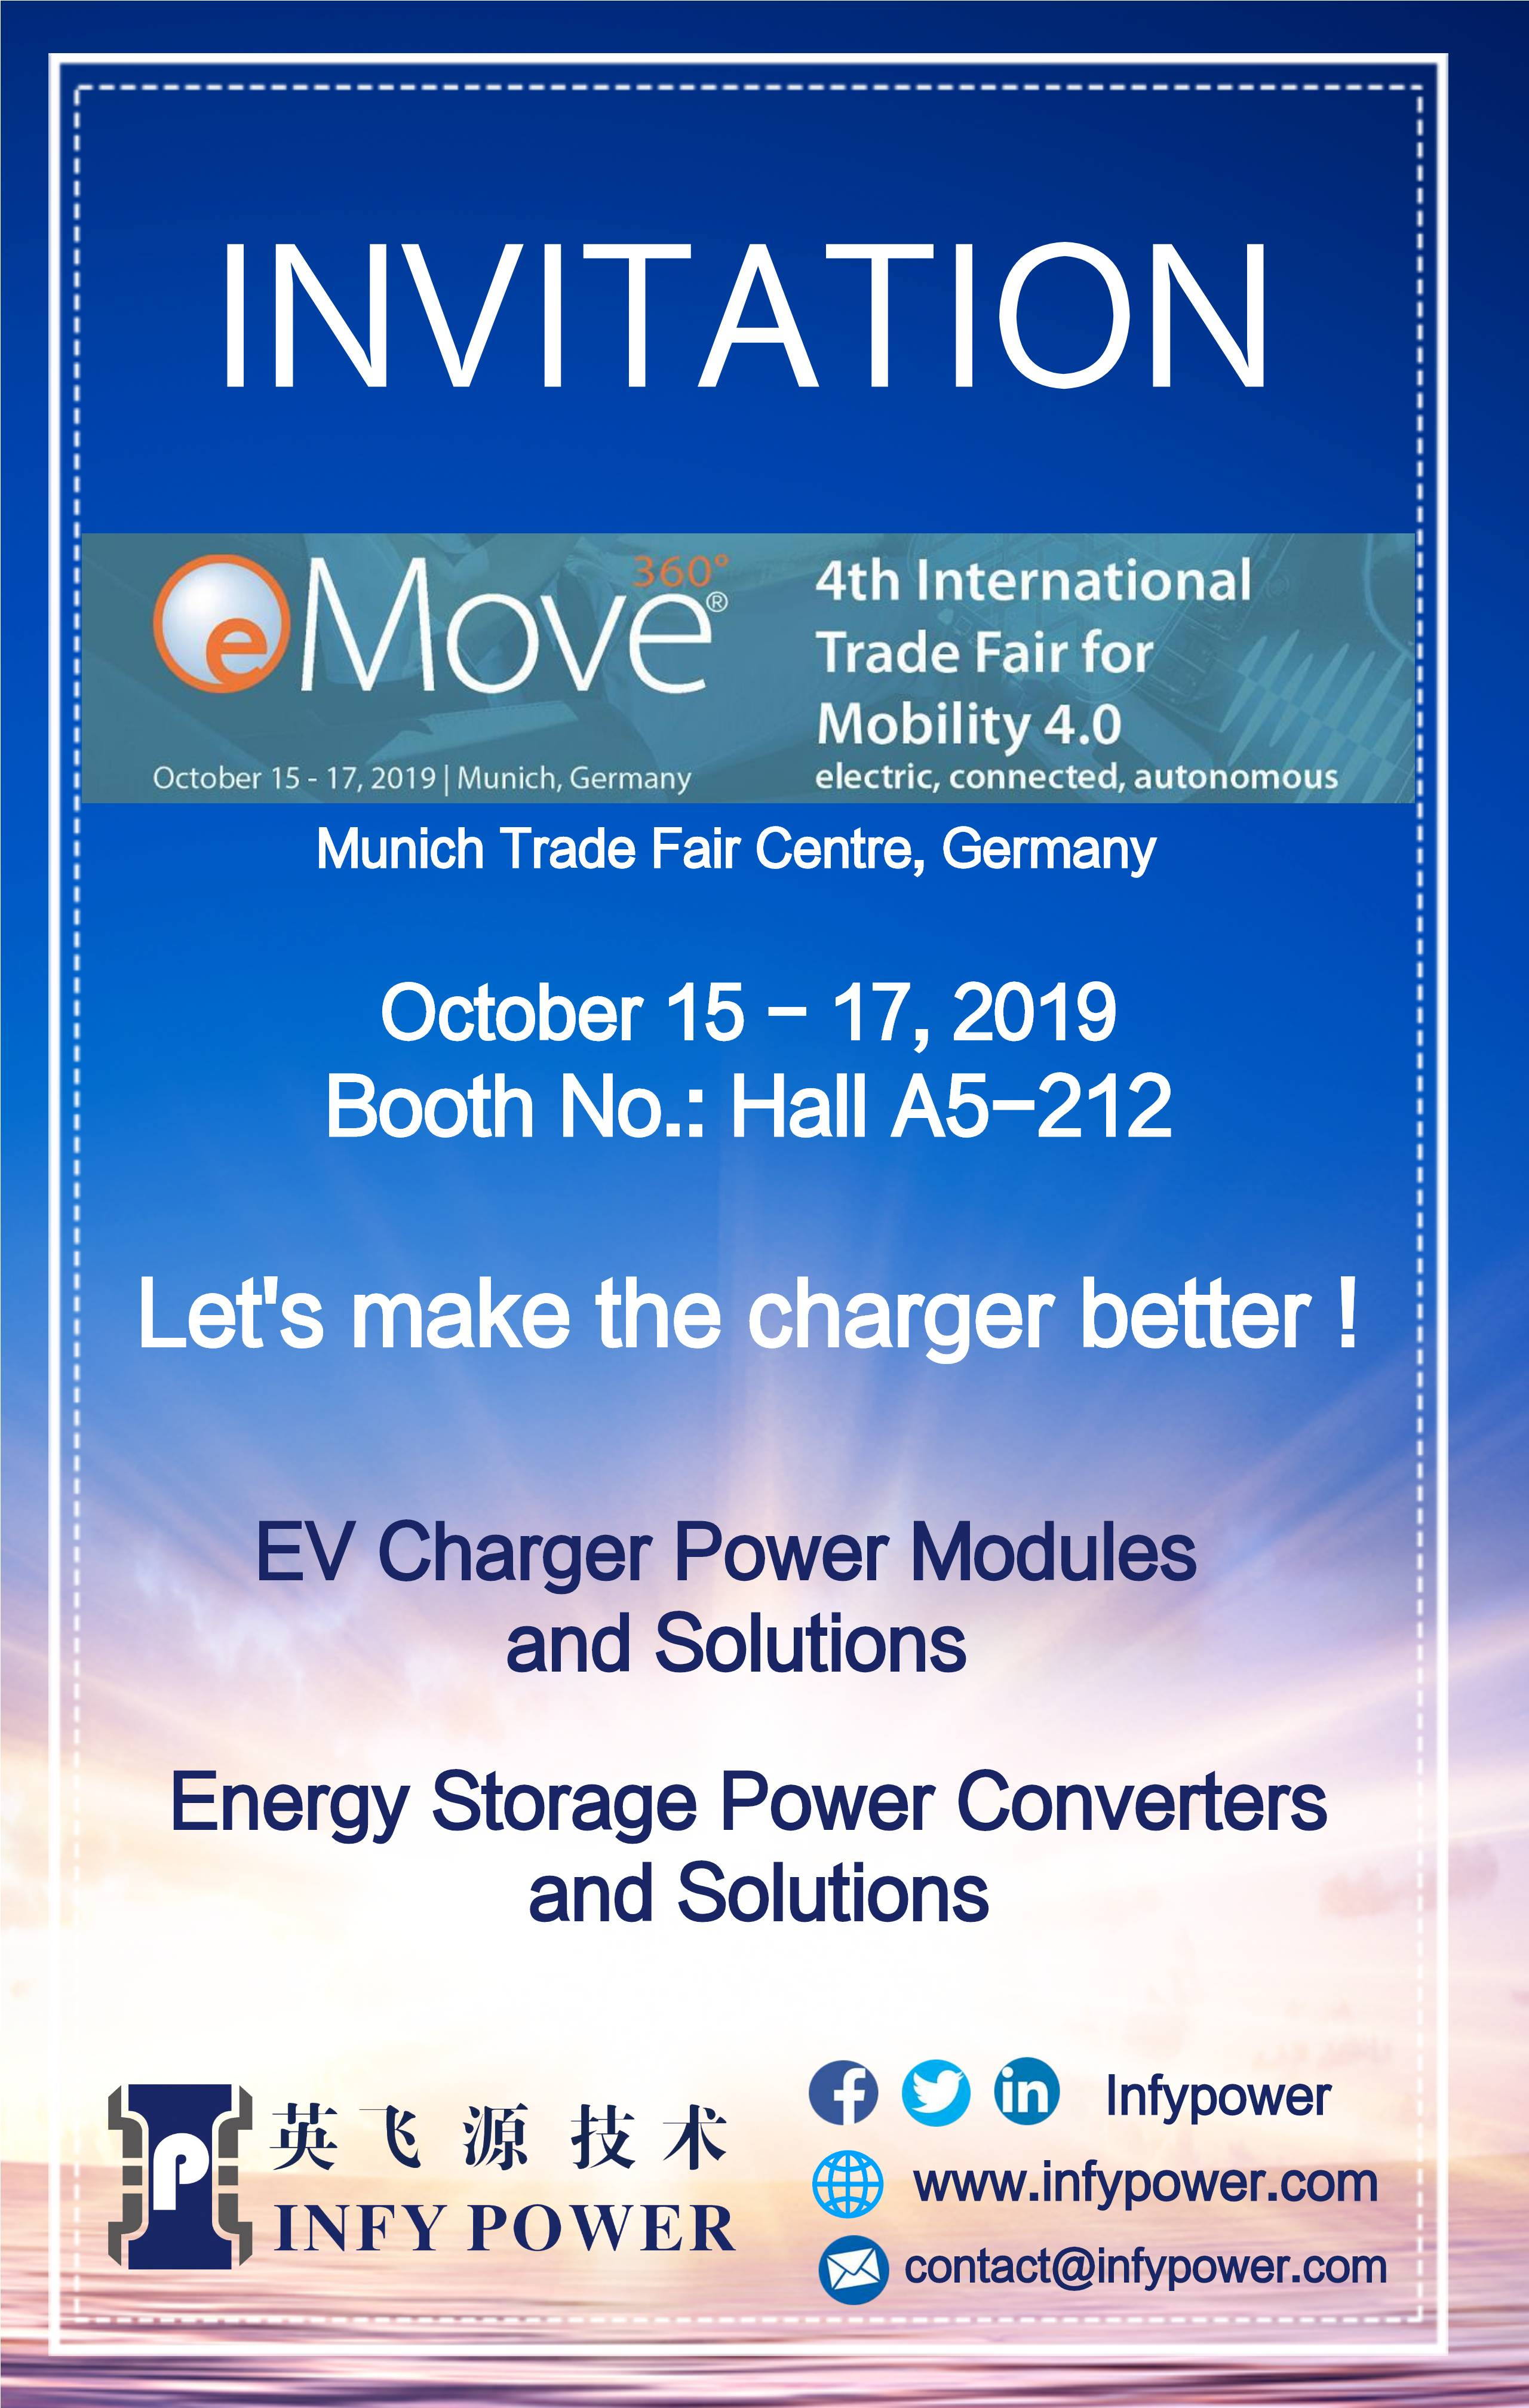 Infypower sincerely invite you to visit our booth in eMove 360 Europe 2019